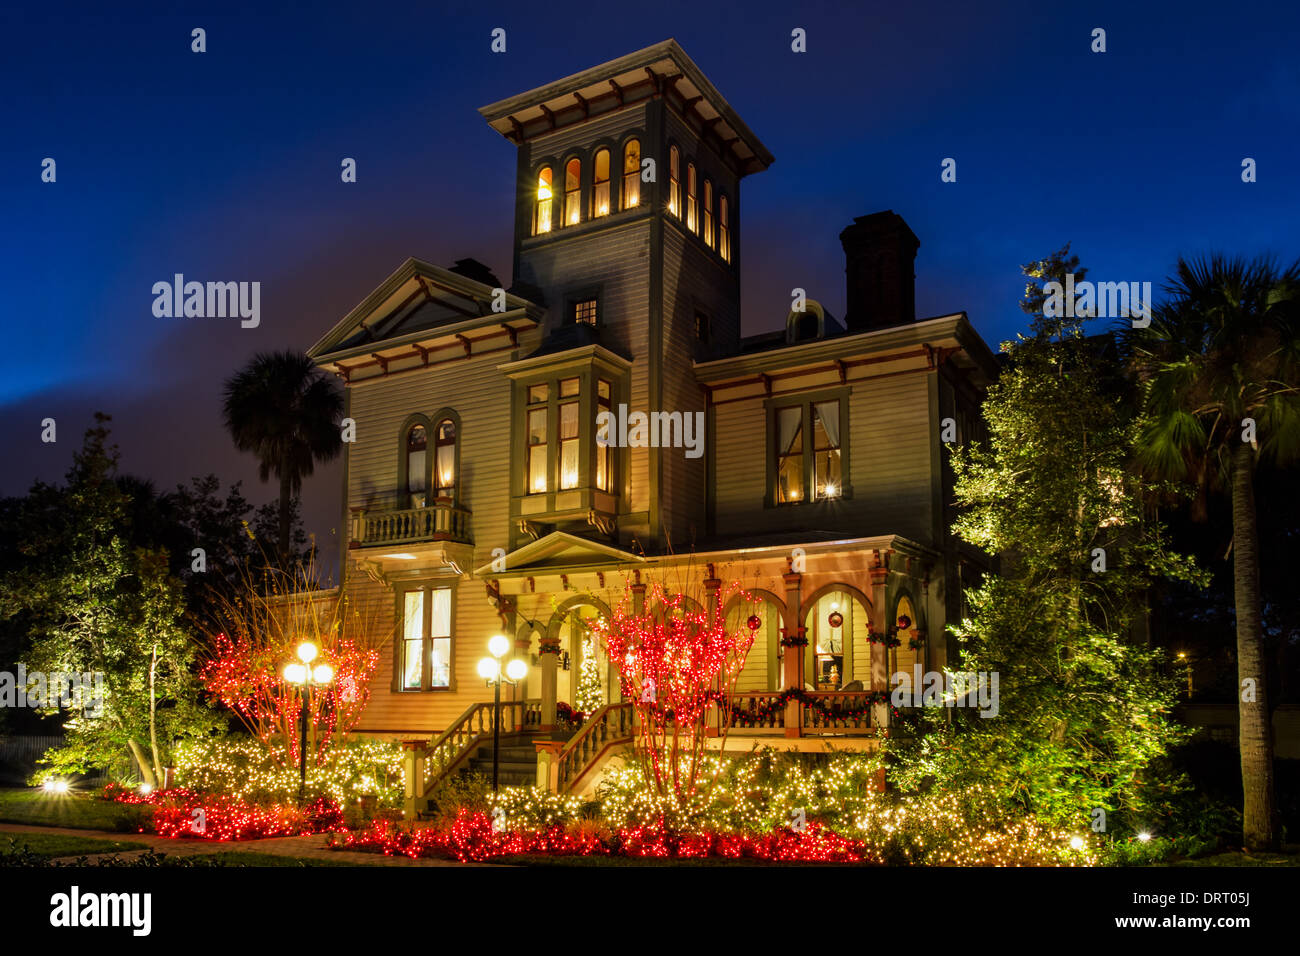 Fairbanks House Fernandina Beach Florida